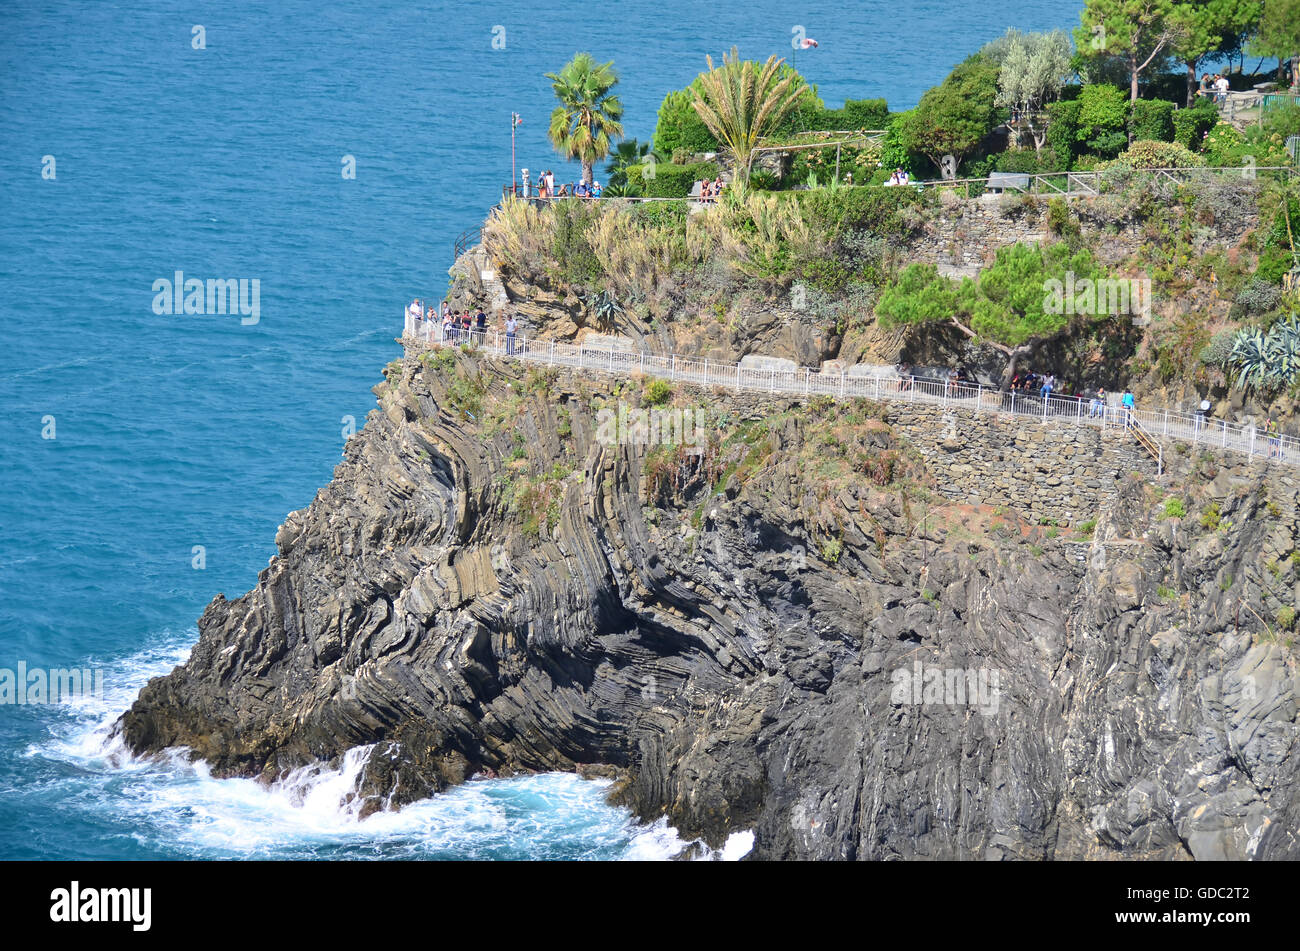 The popular coastal path linking the villages in the Cinque Terre on Italy's Ligurian coast Stock Photo